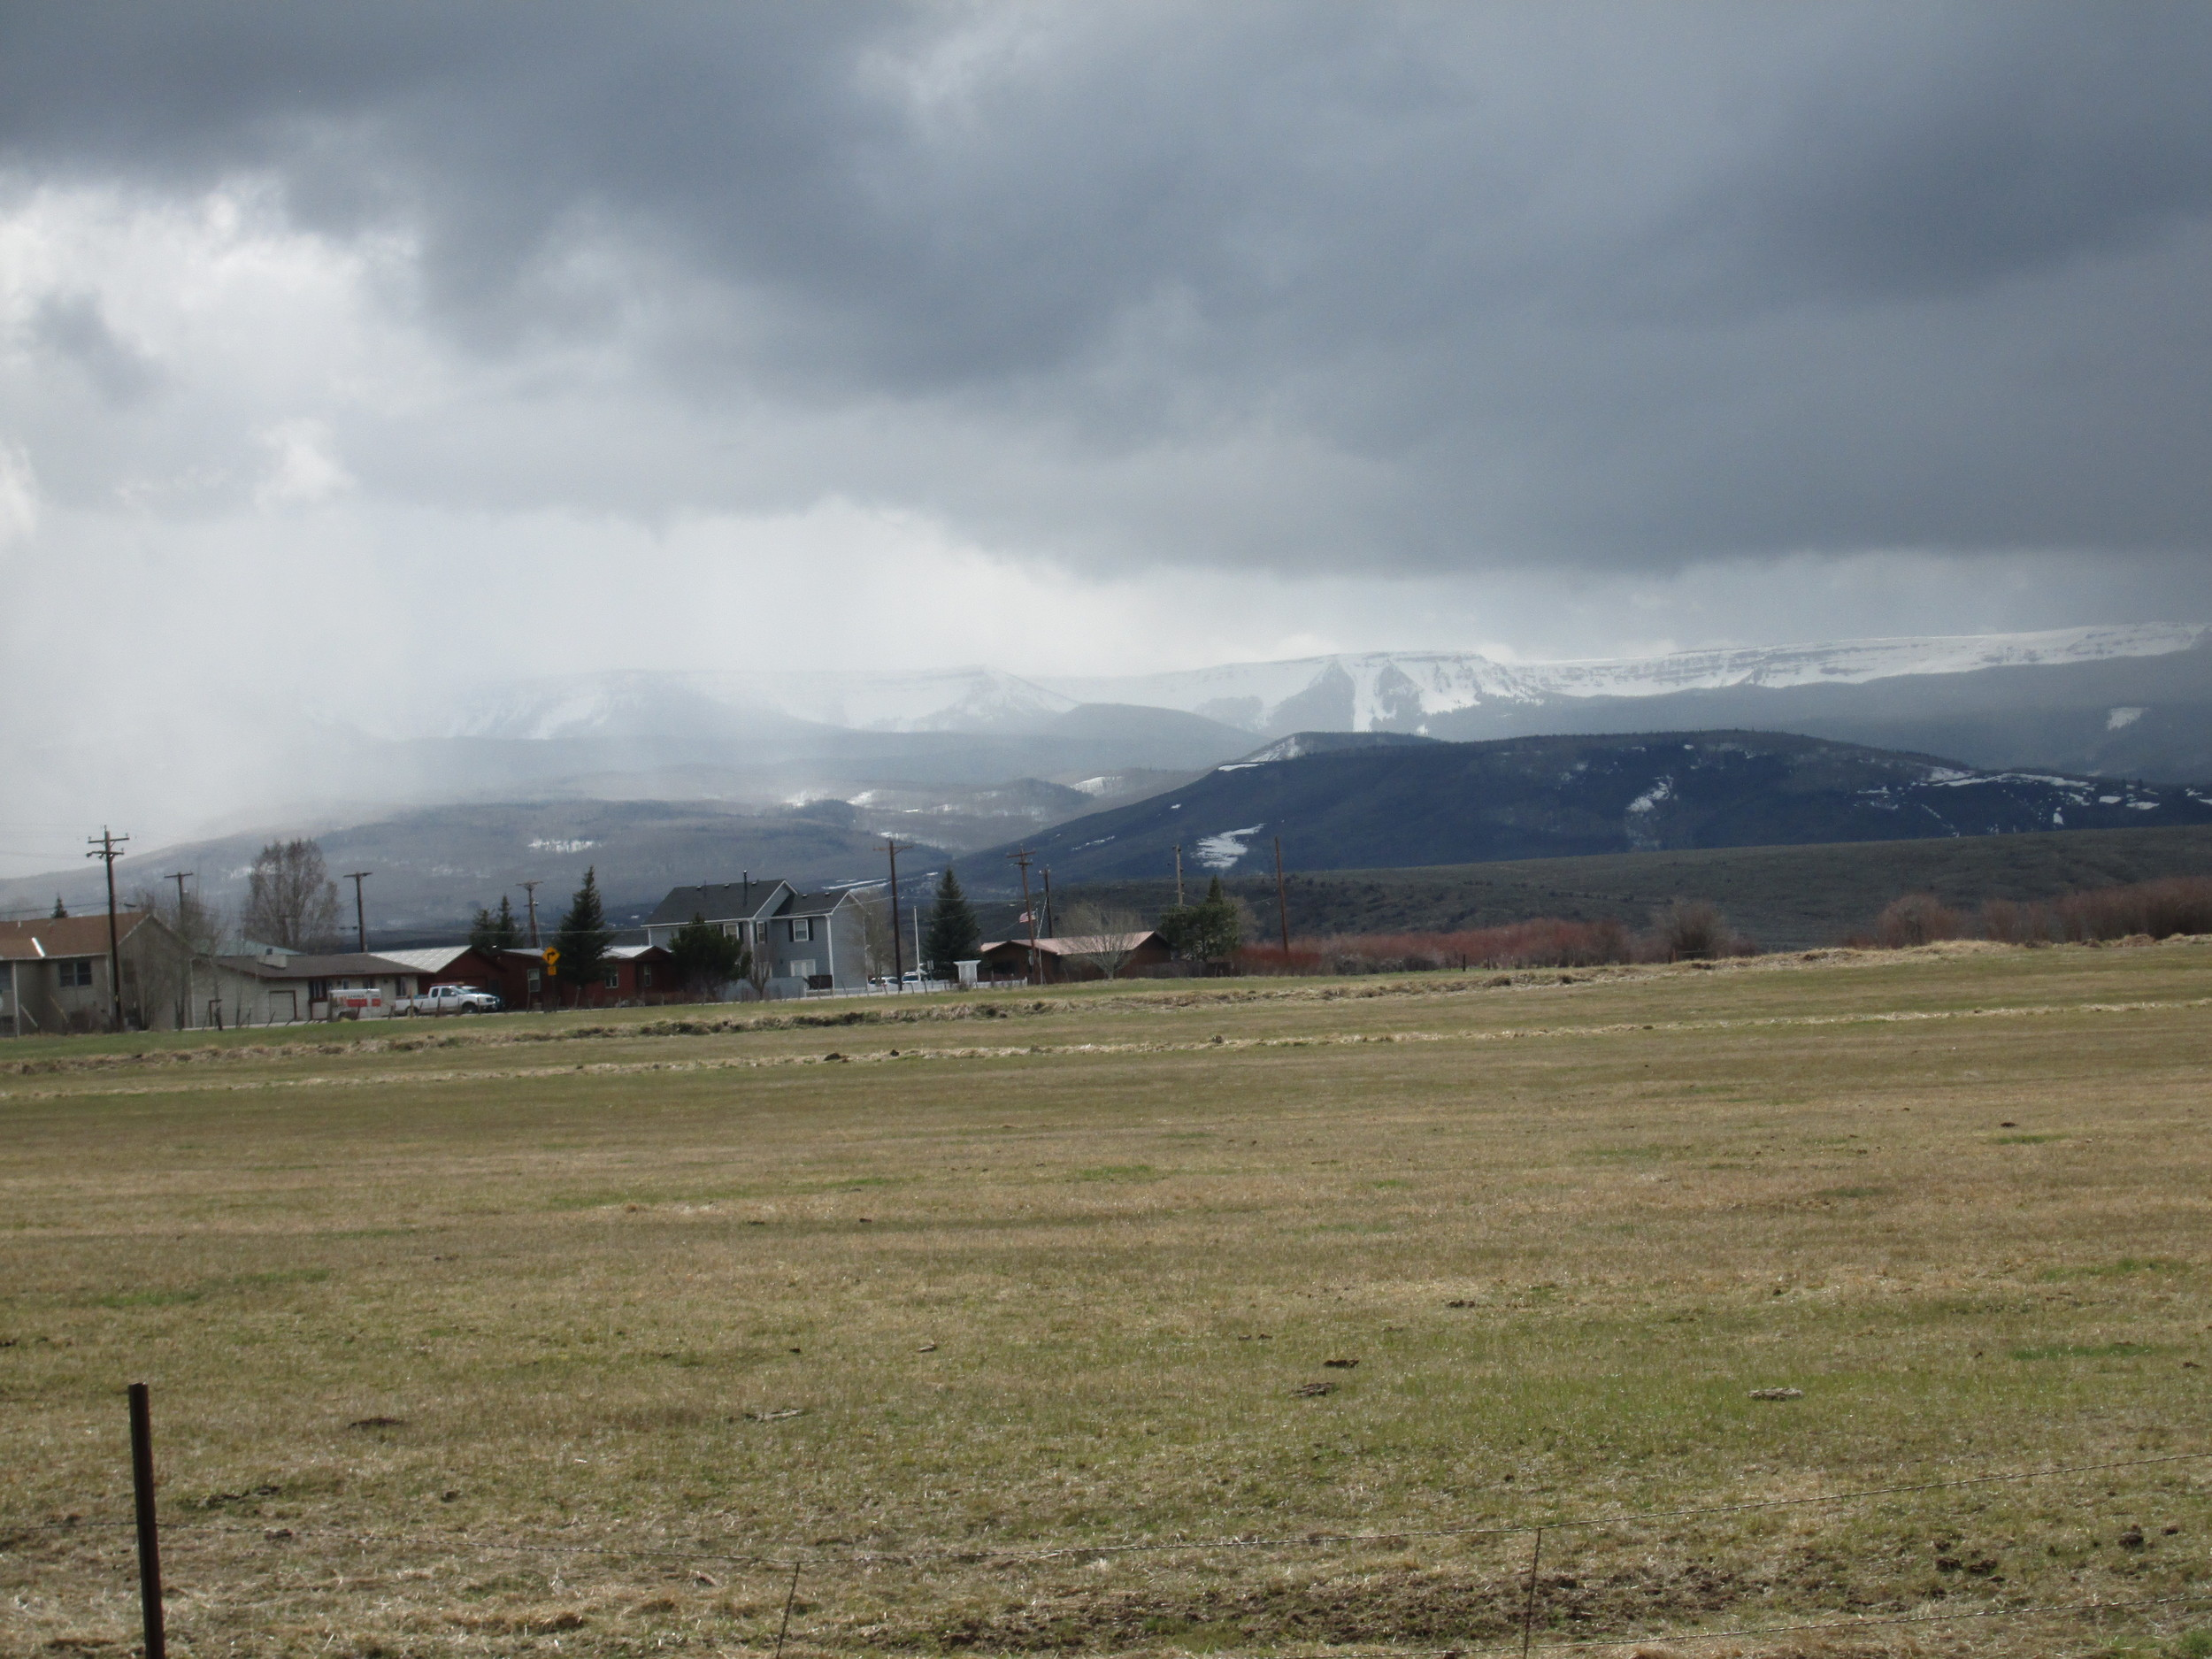 The Flat Tops eastern rim, seen behind the town of Yampa, was well covered in snow, while the valley floor was snow free and beginning to green.